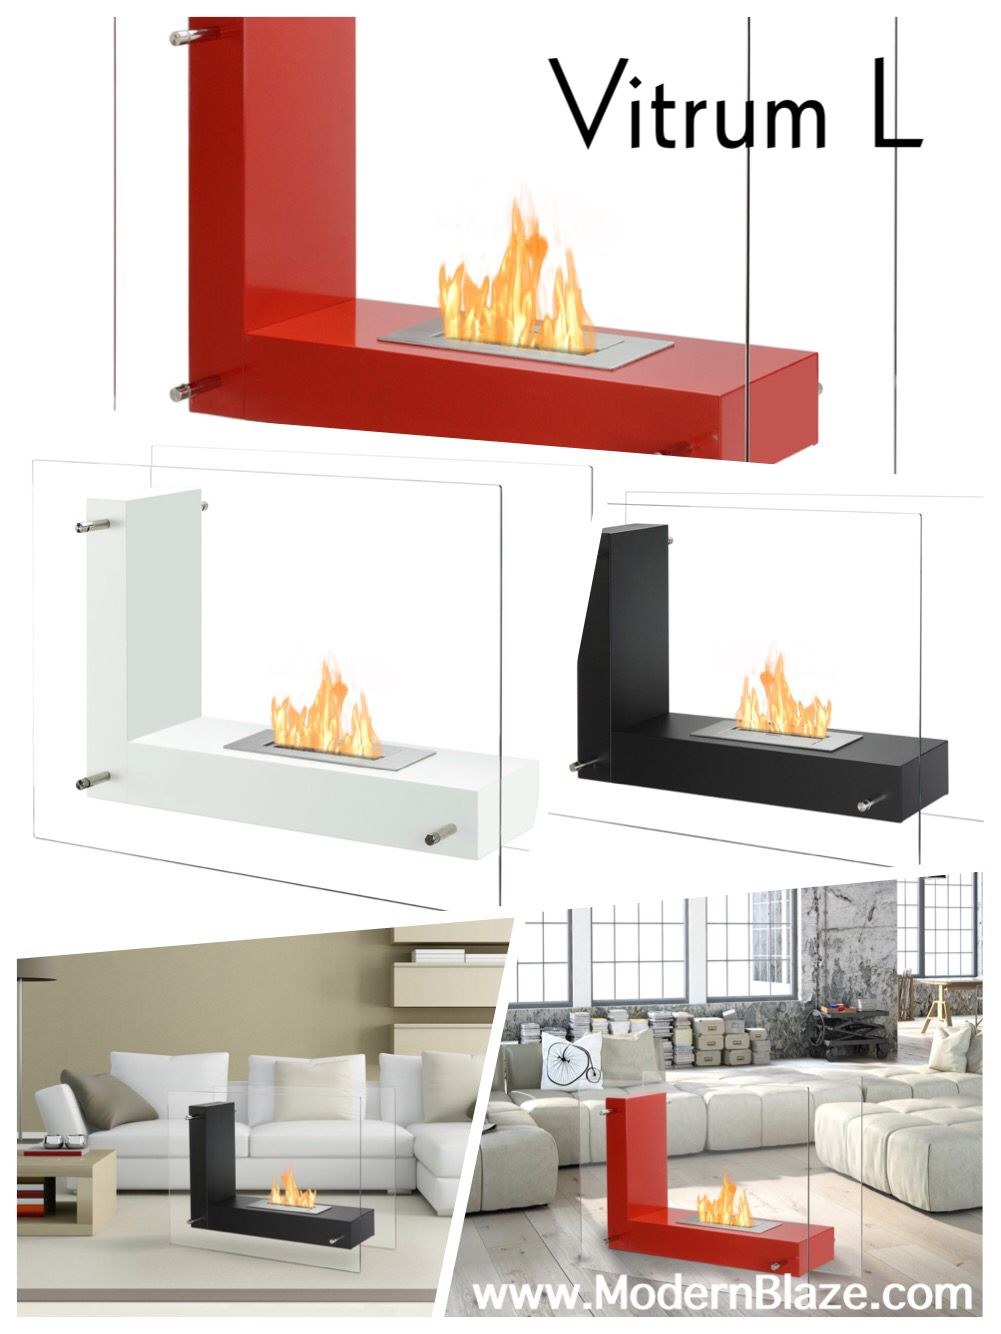 Ignis Vitrum L Red 32 Free Standing Ethanol Fireplace In Outdoor Fsf 005r Freestanding Fireplace Ethanol Fireplace Living Room Panelling